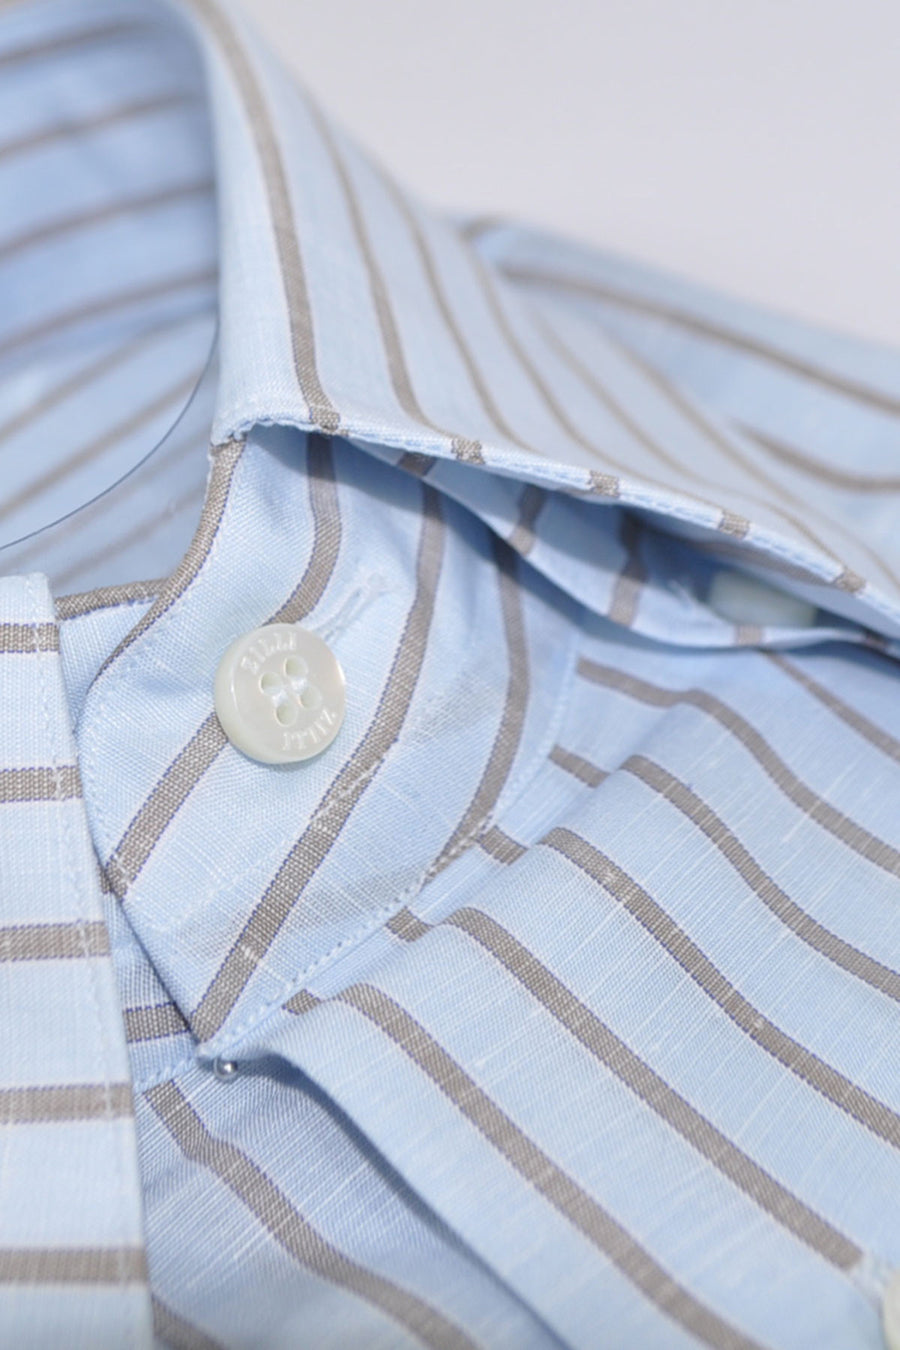 Zilli Shirt Sky Blue Linen Cotton Blend